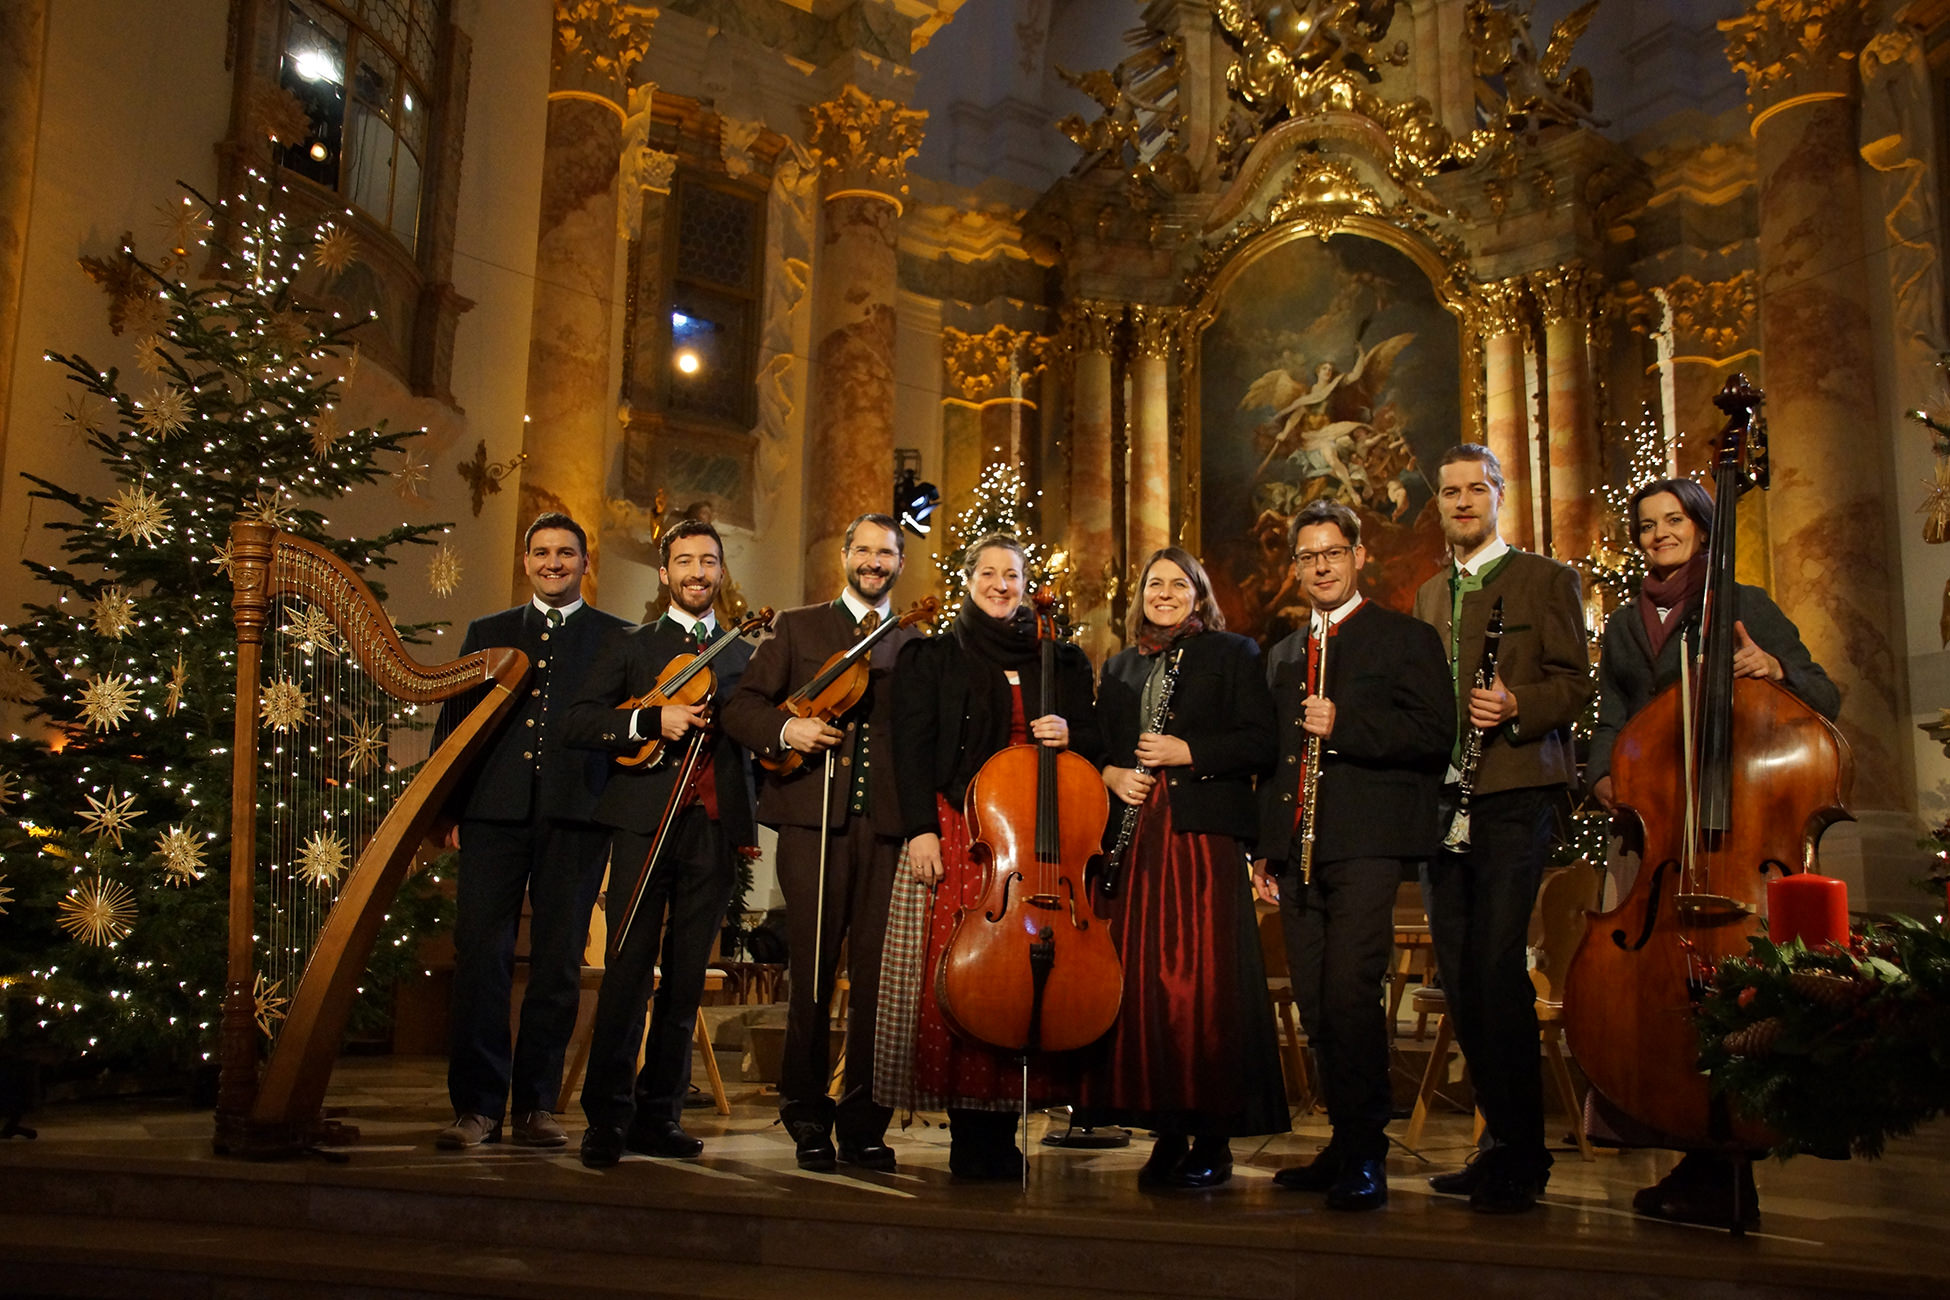 Ensemble des Münchner Advent